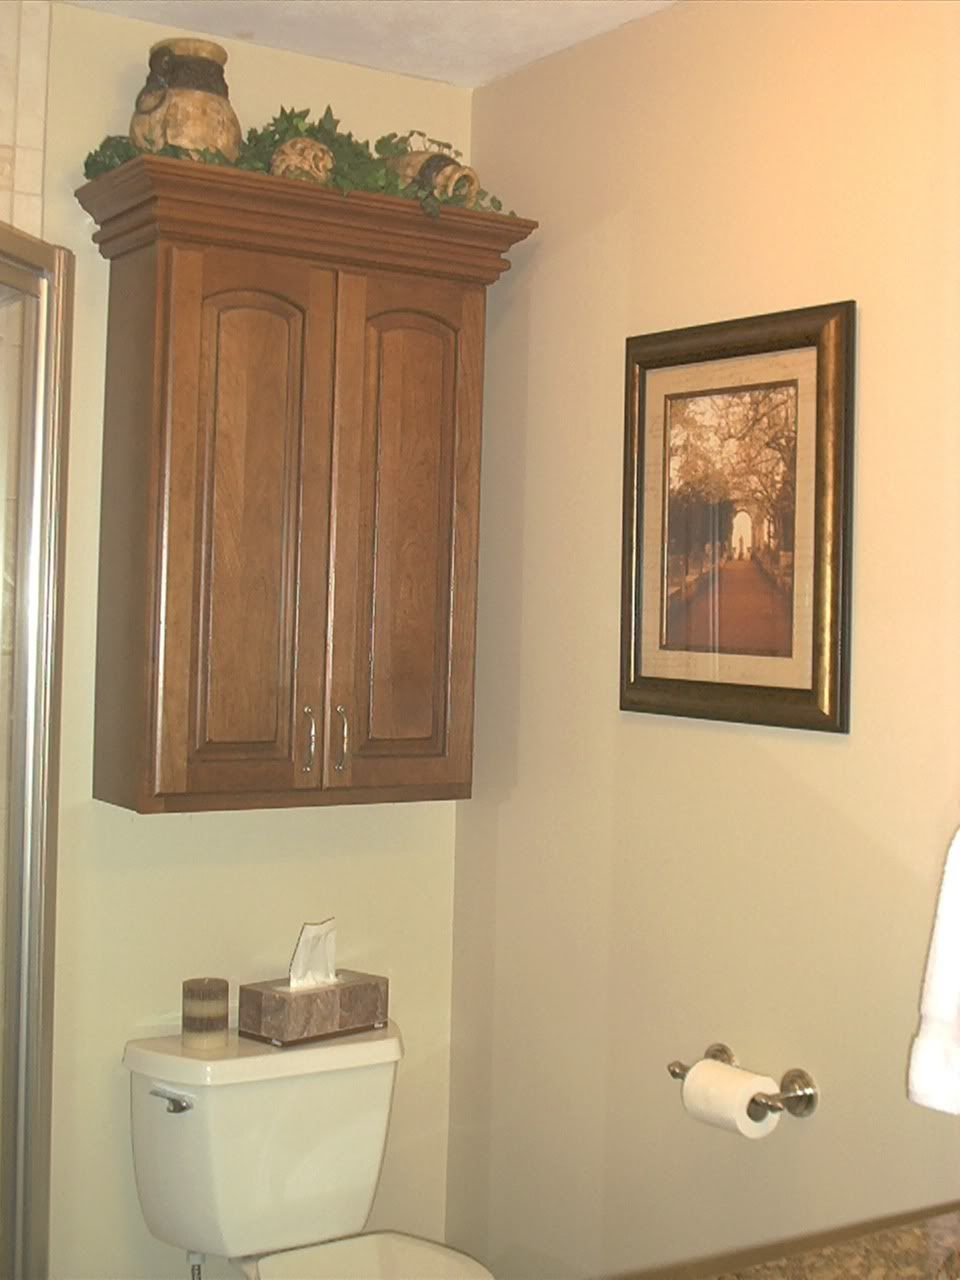 Bathroom cabinets over sink - Bathroom Storage Cabinets Over Toilet Wall Cabinet Above Toilet In Water Closet Toilet Room